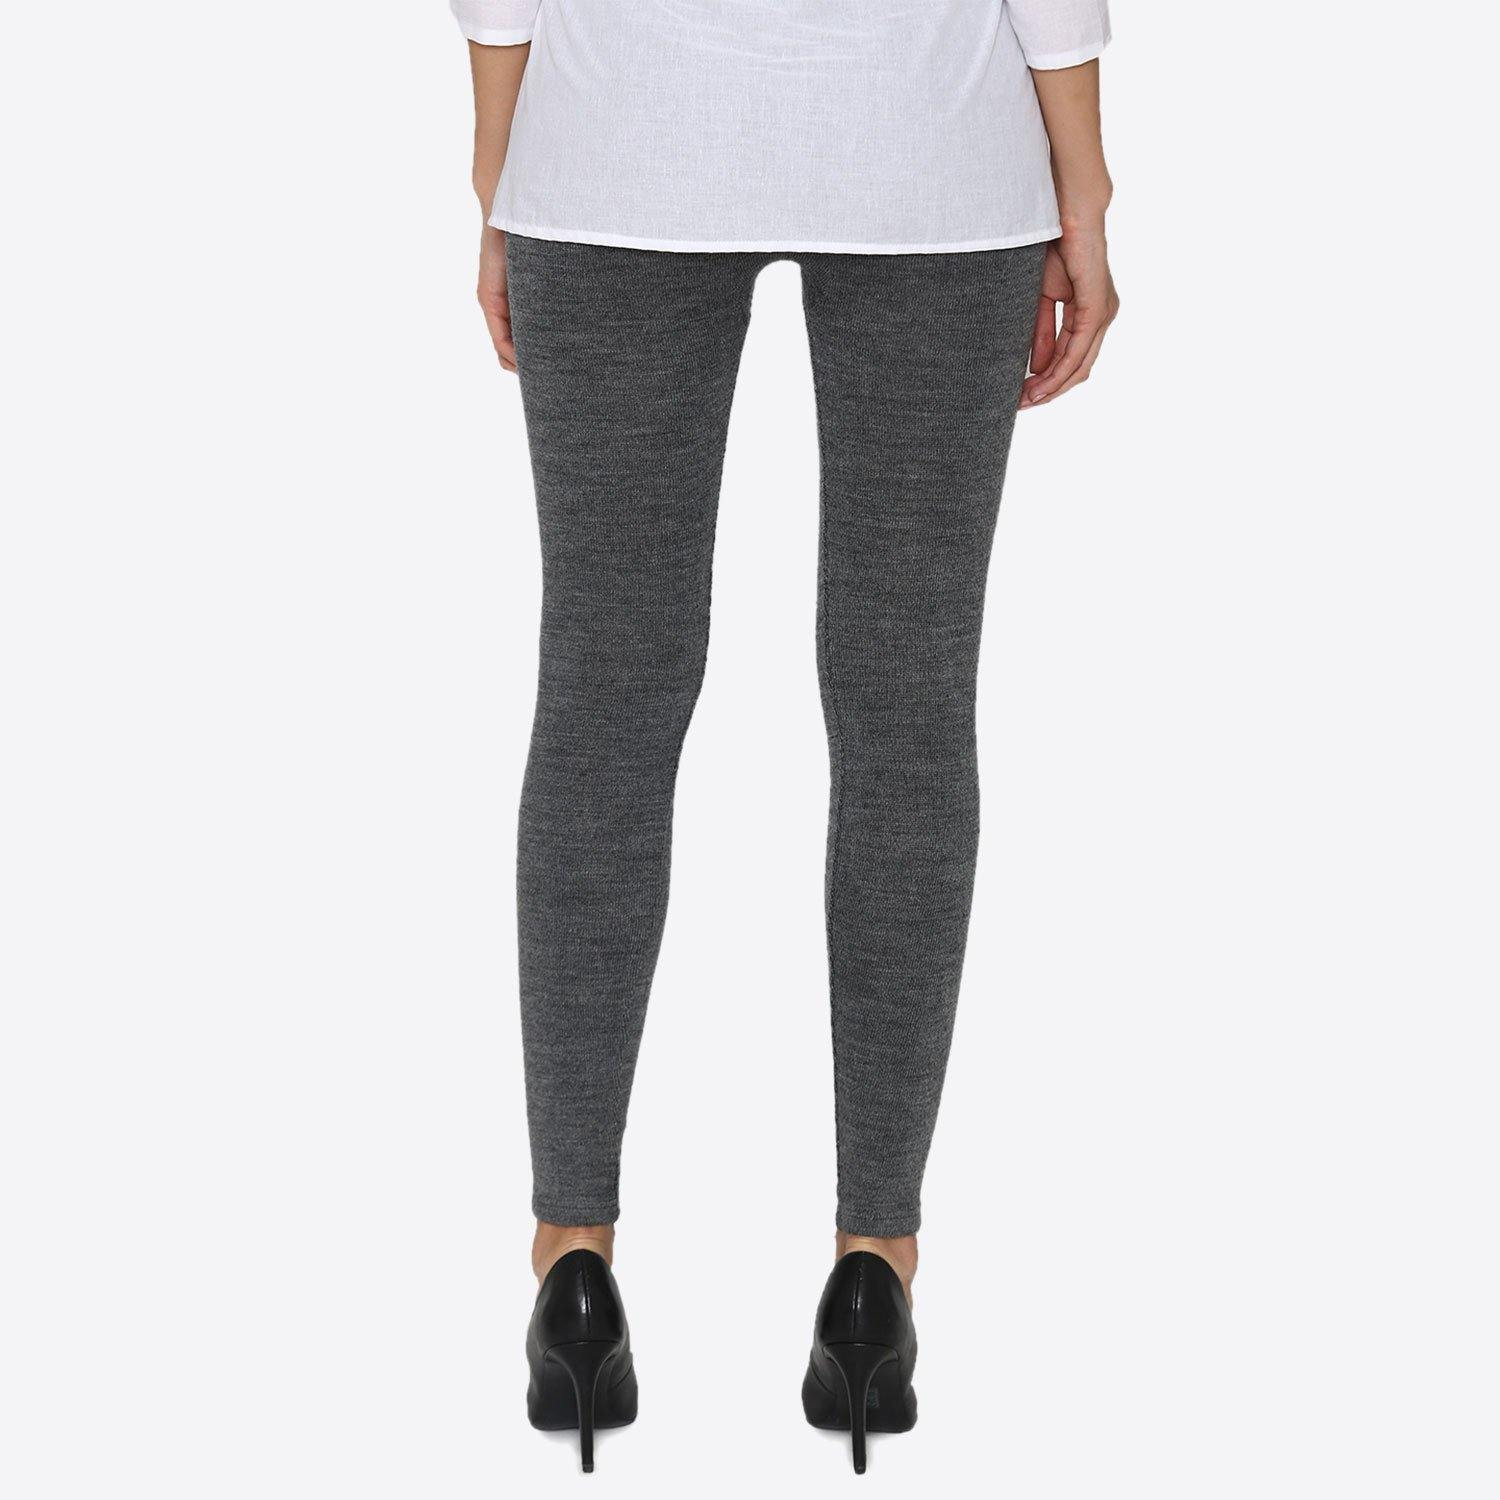 Female Woolen Leggings